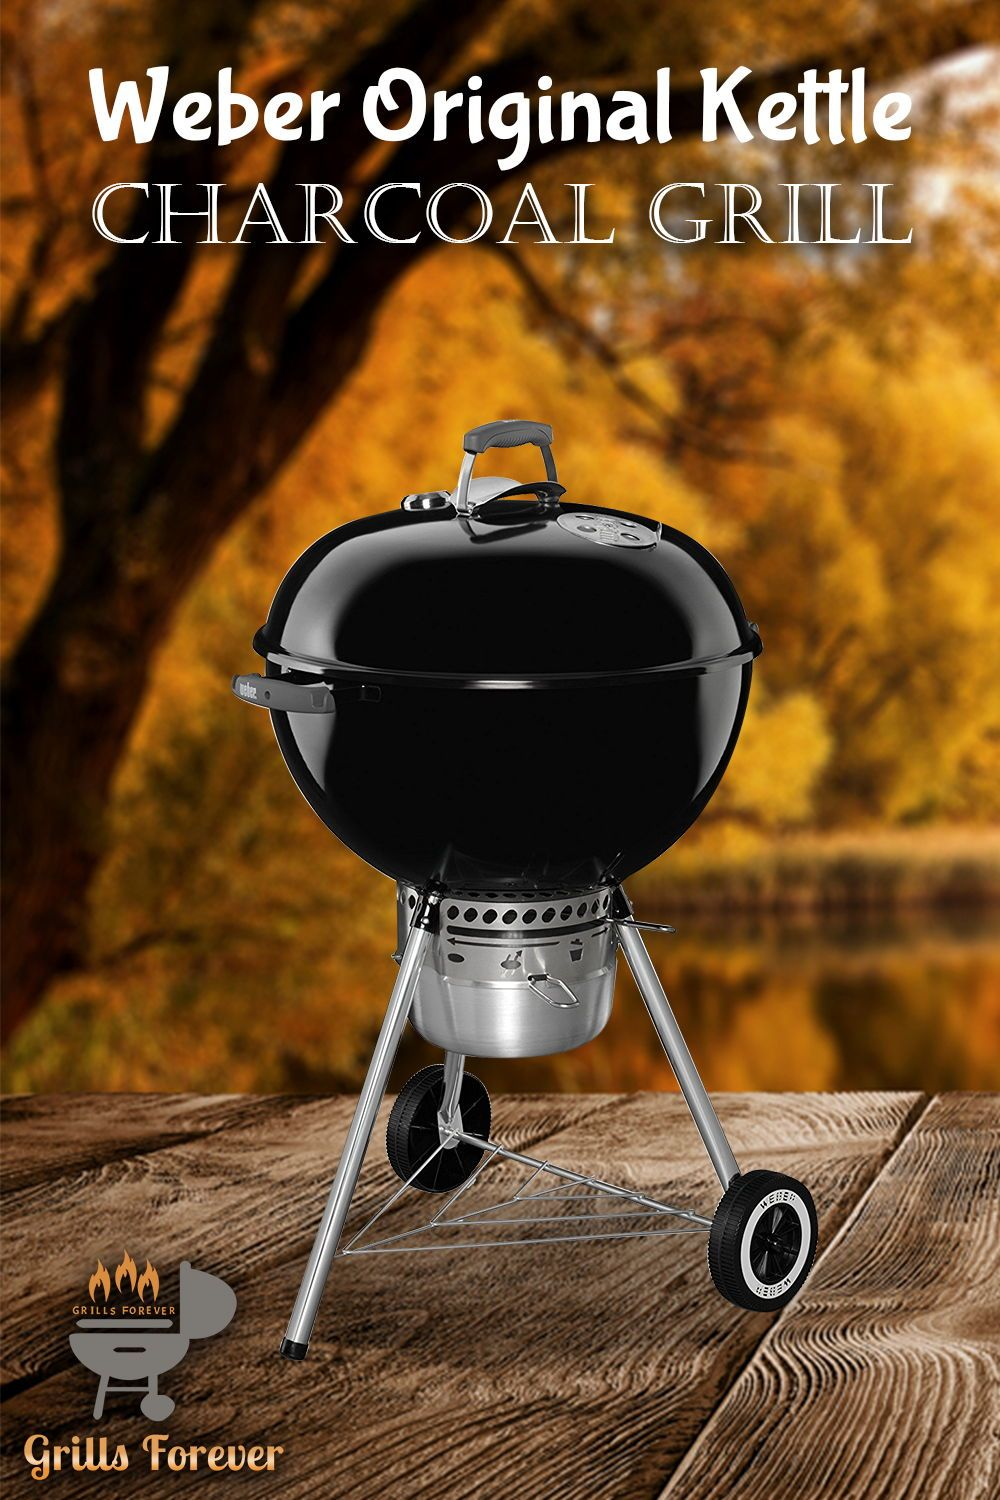 Top 10 Weber Grills (May 2019): Reviews & Buyers Guide in